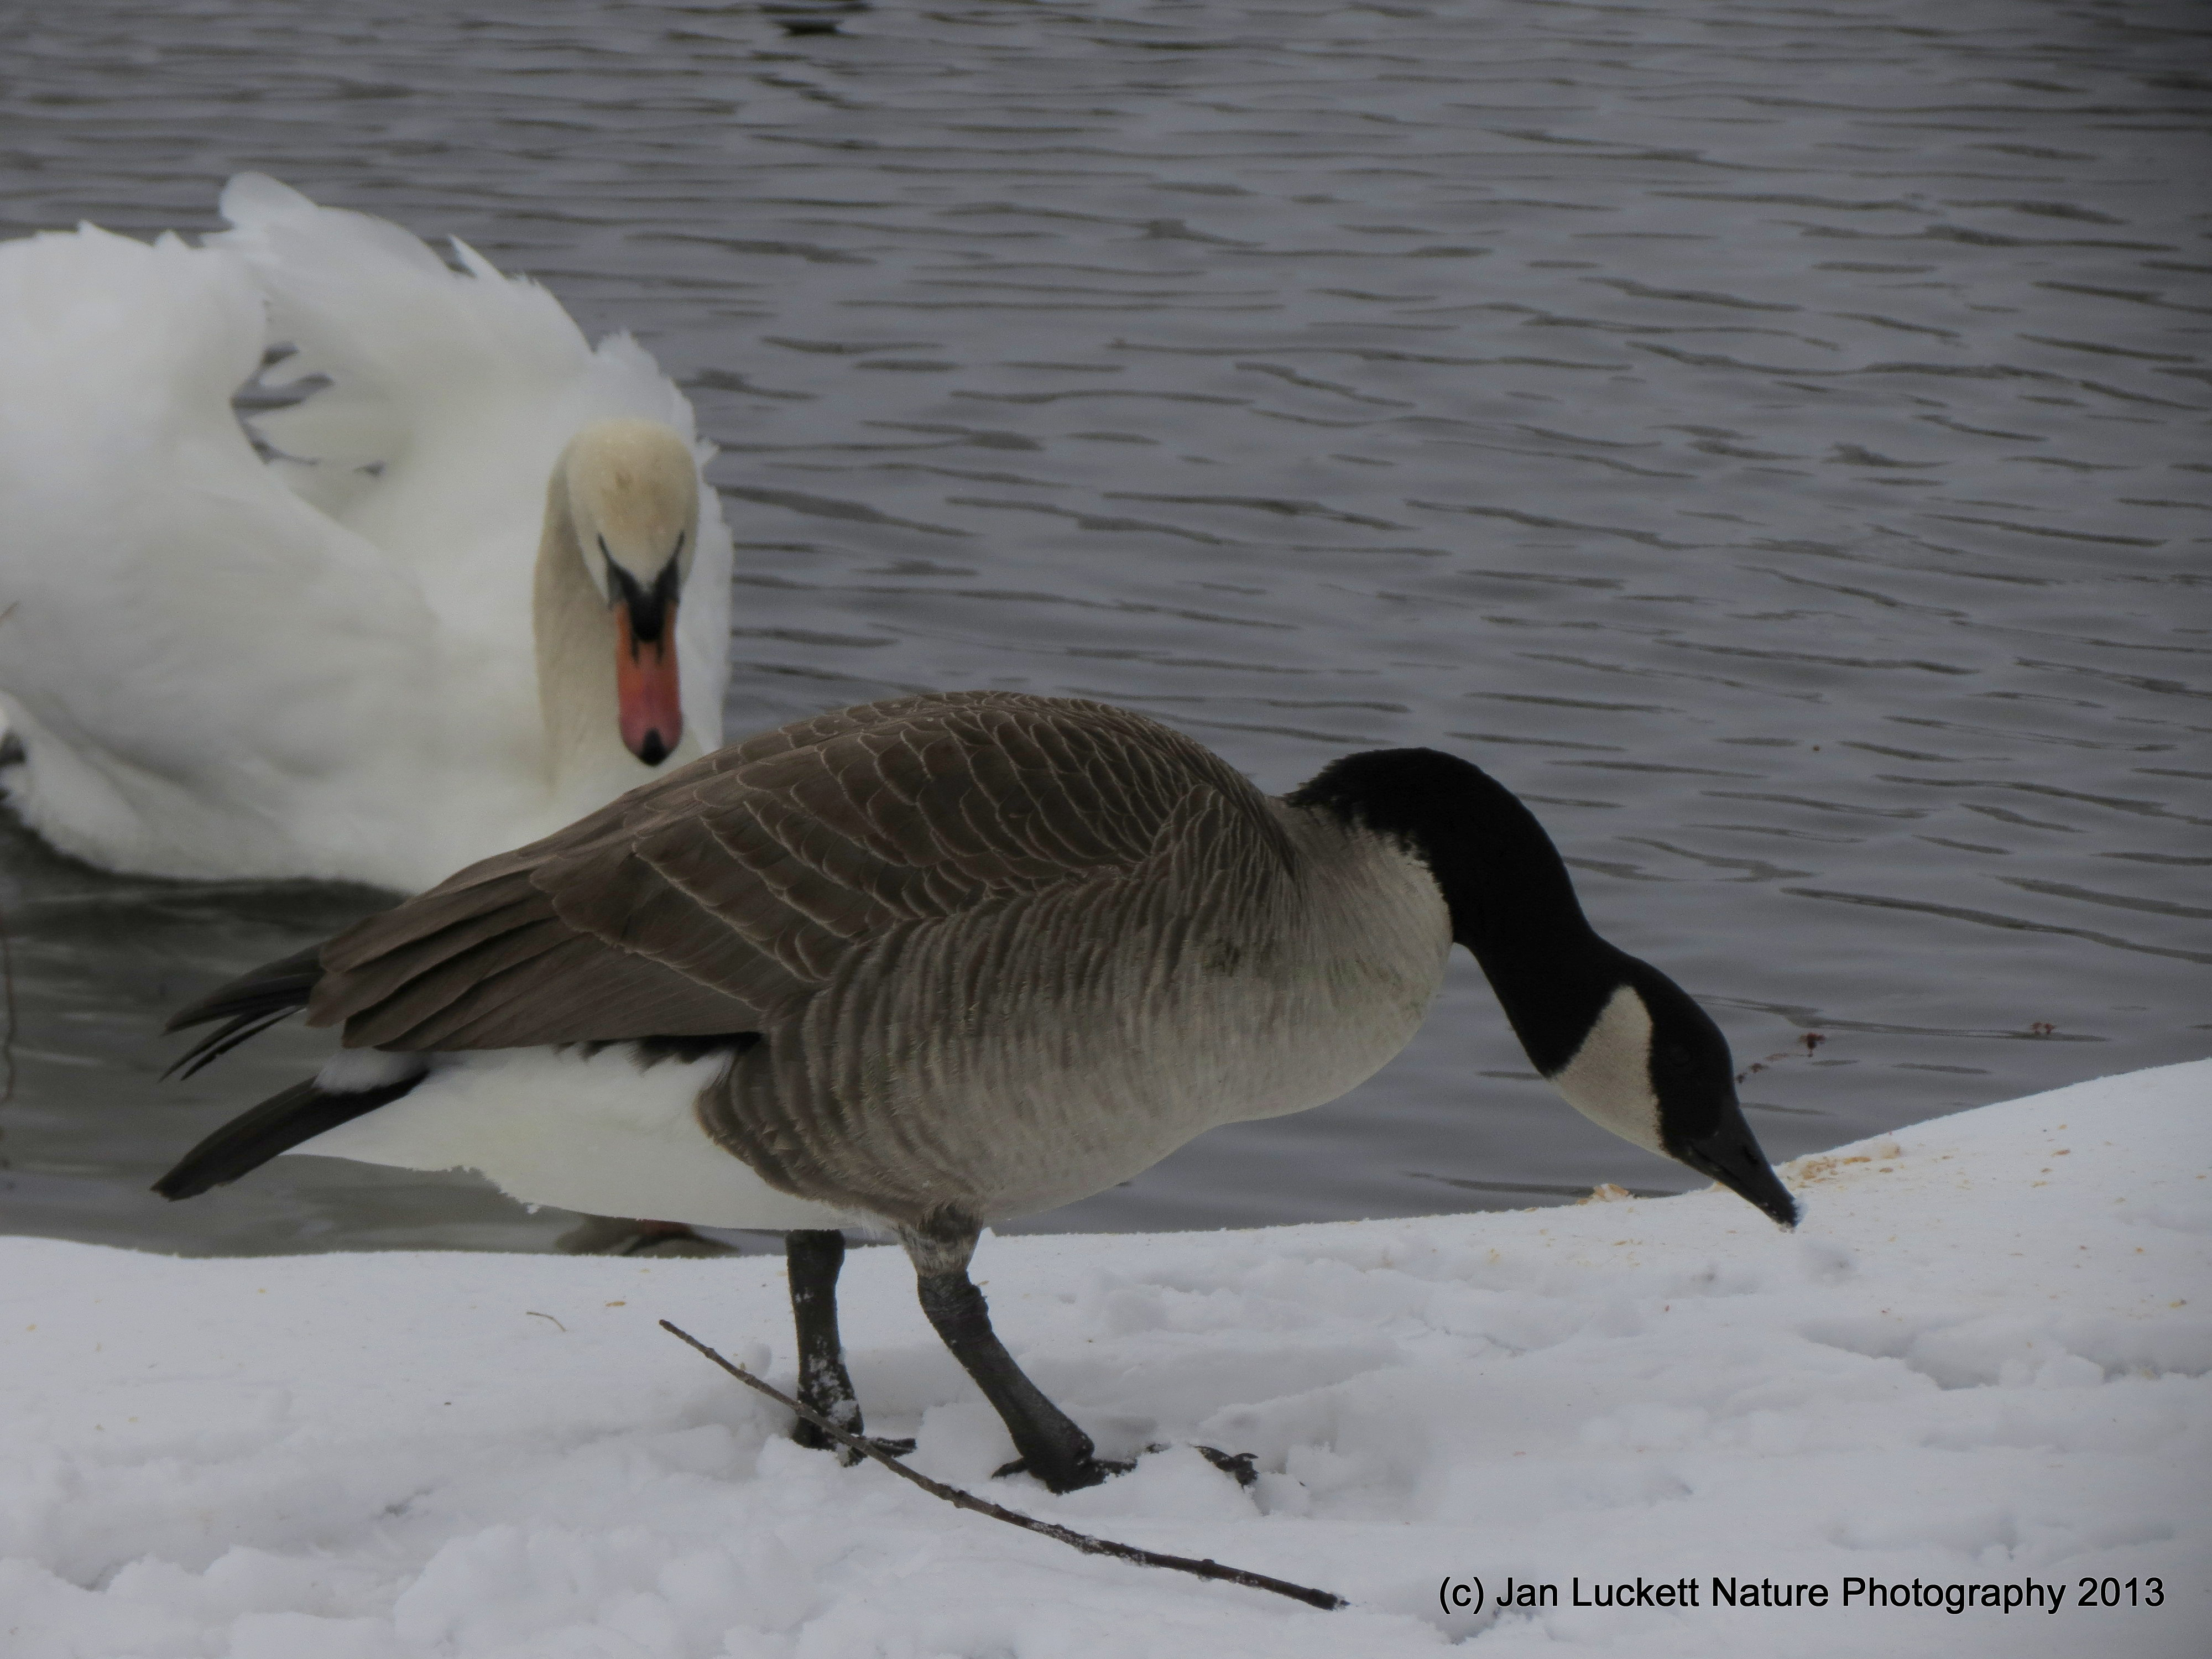 Swans Have Come Back >> Mute Swans vs. Canada Geese | Quiet Solo Pursuits